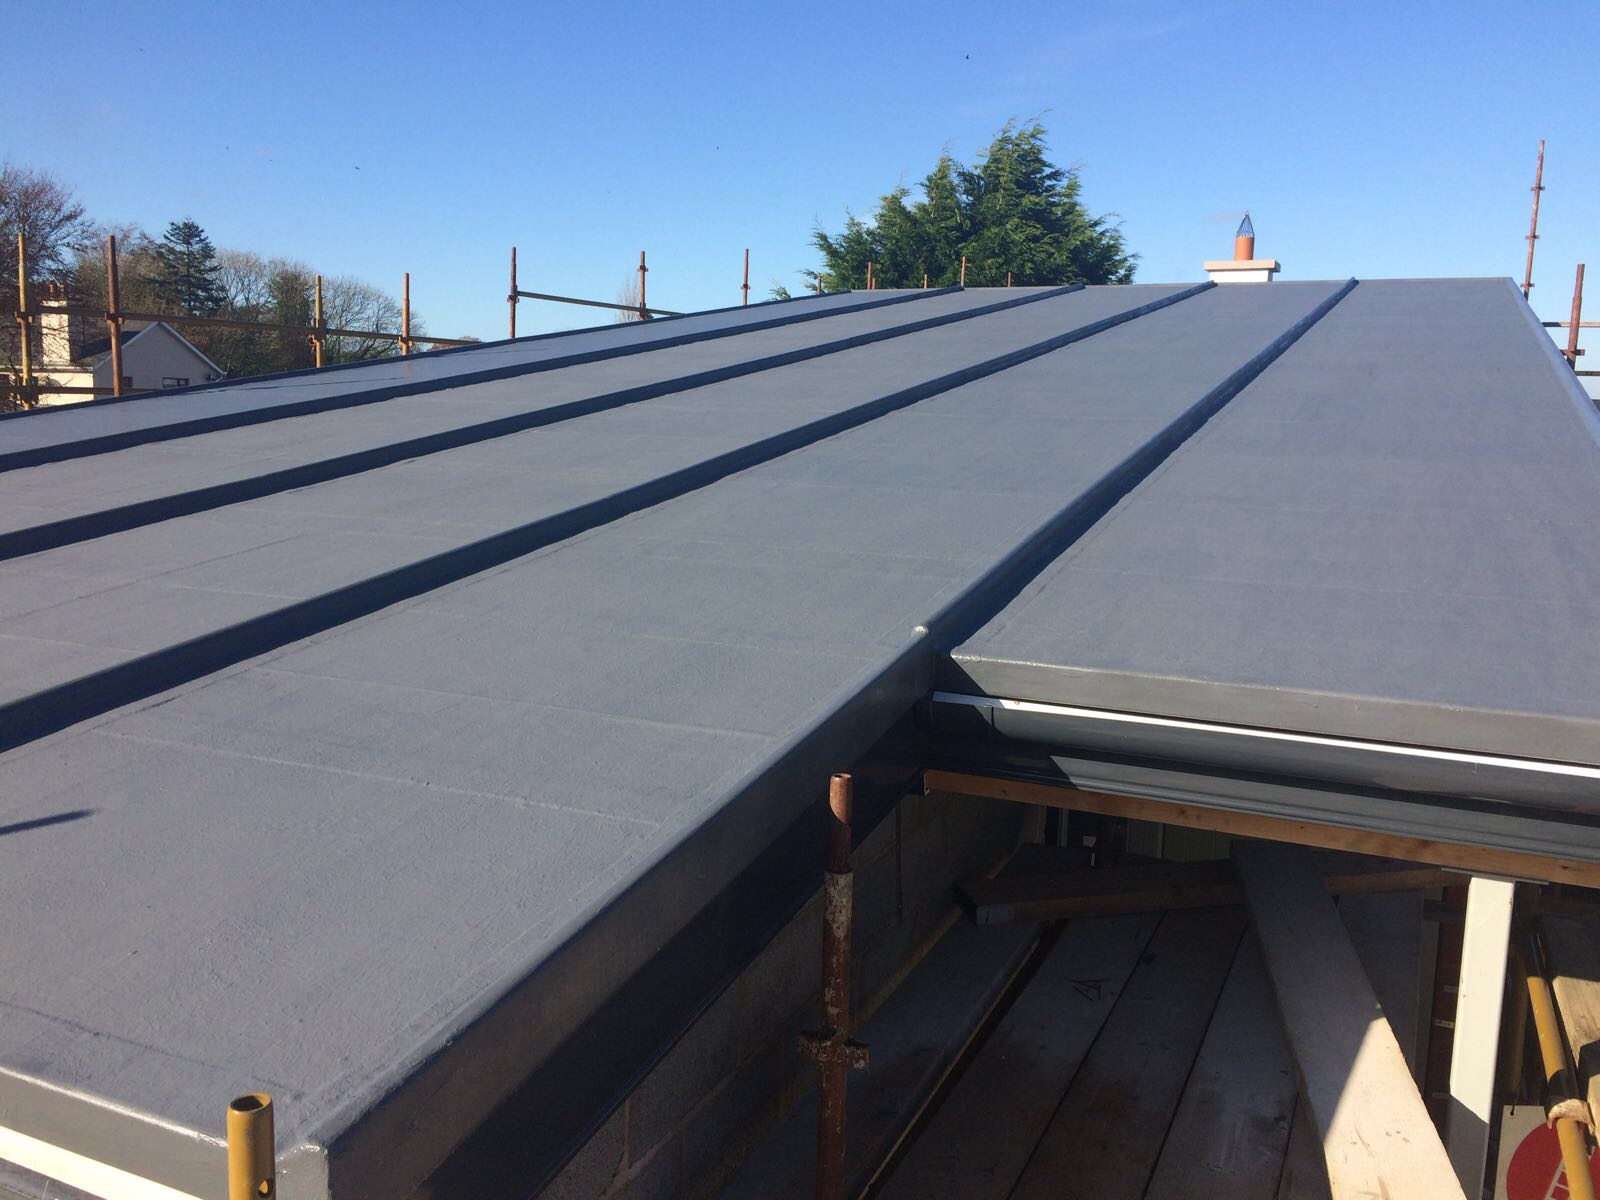 Fibreglass Roofing Products Supply And Installation For